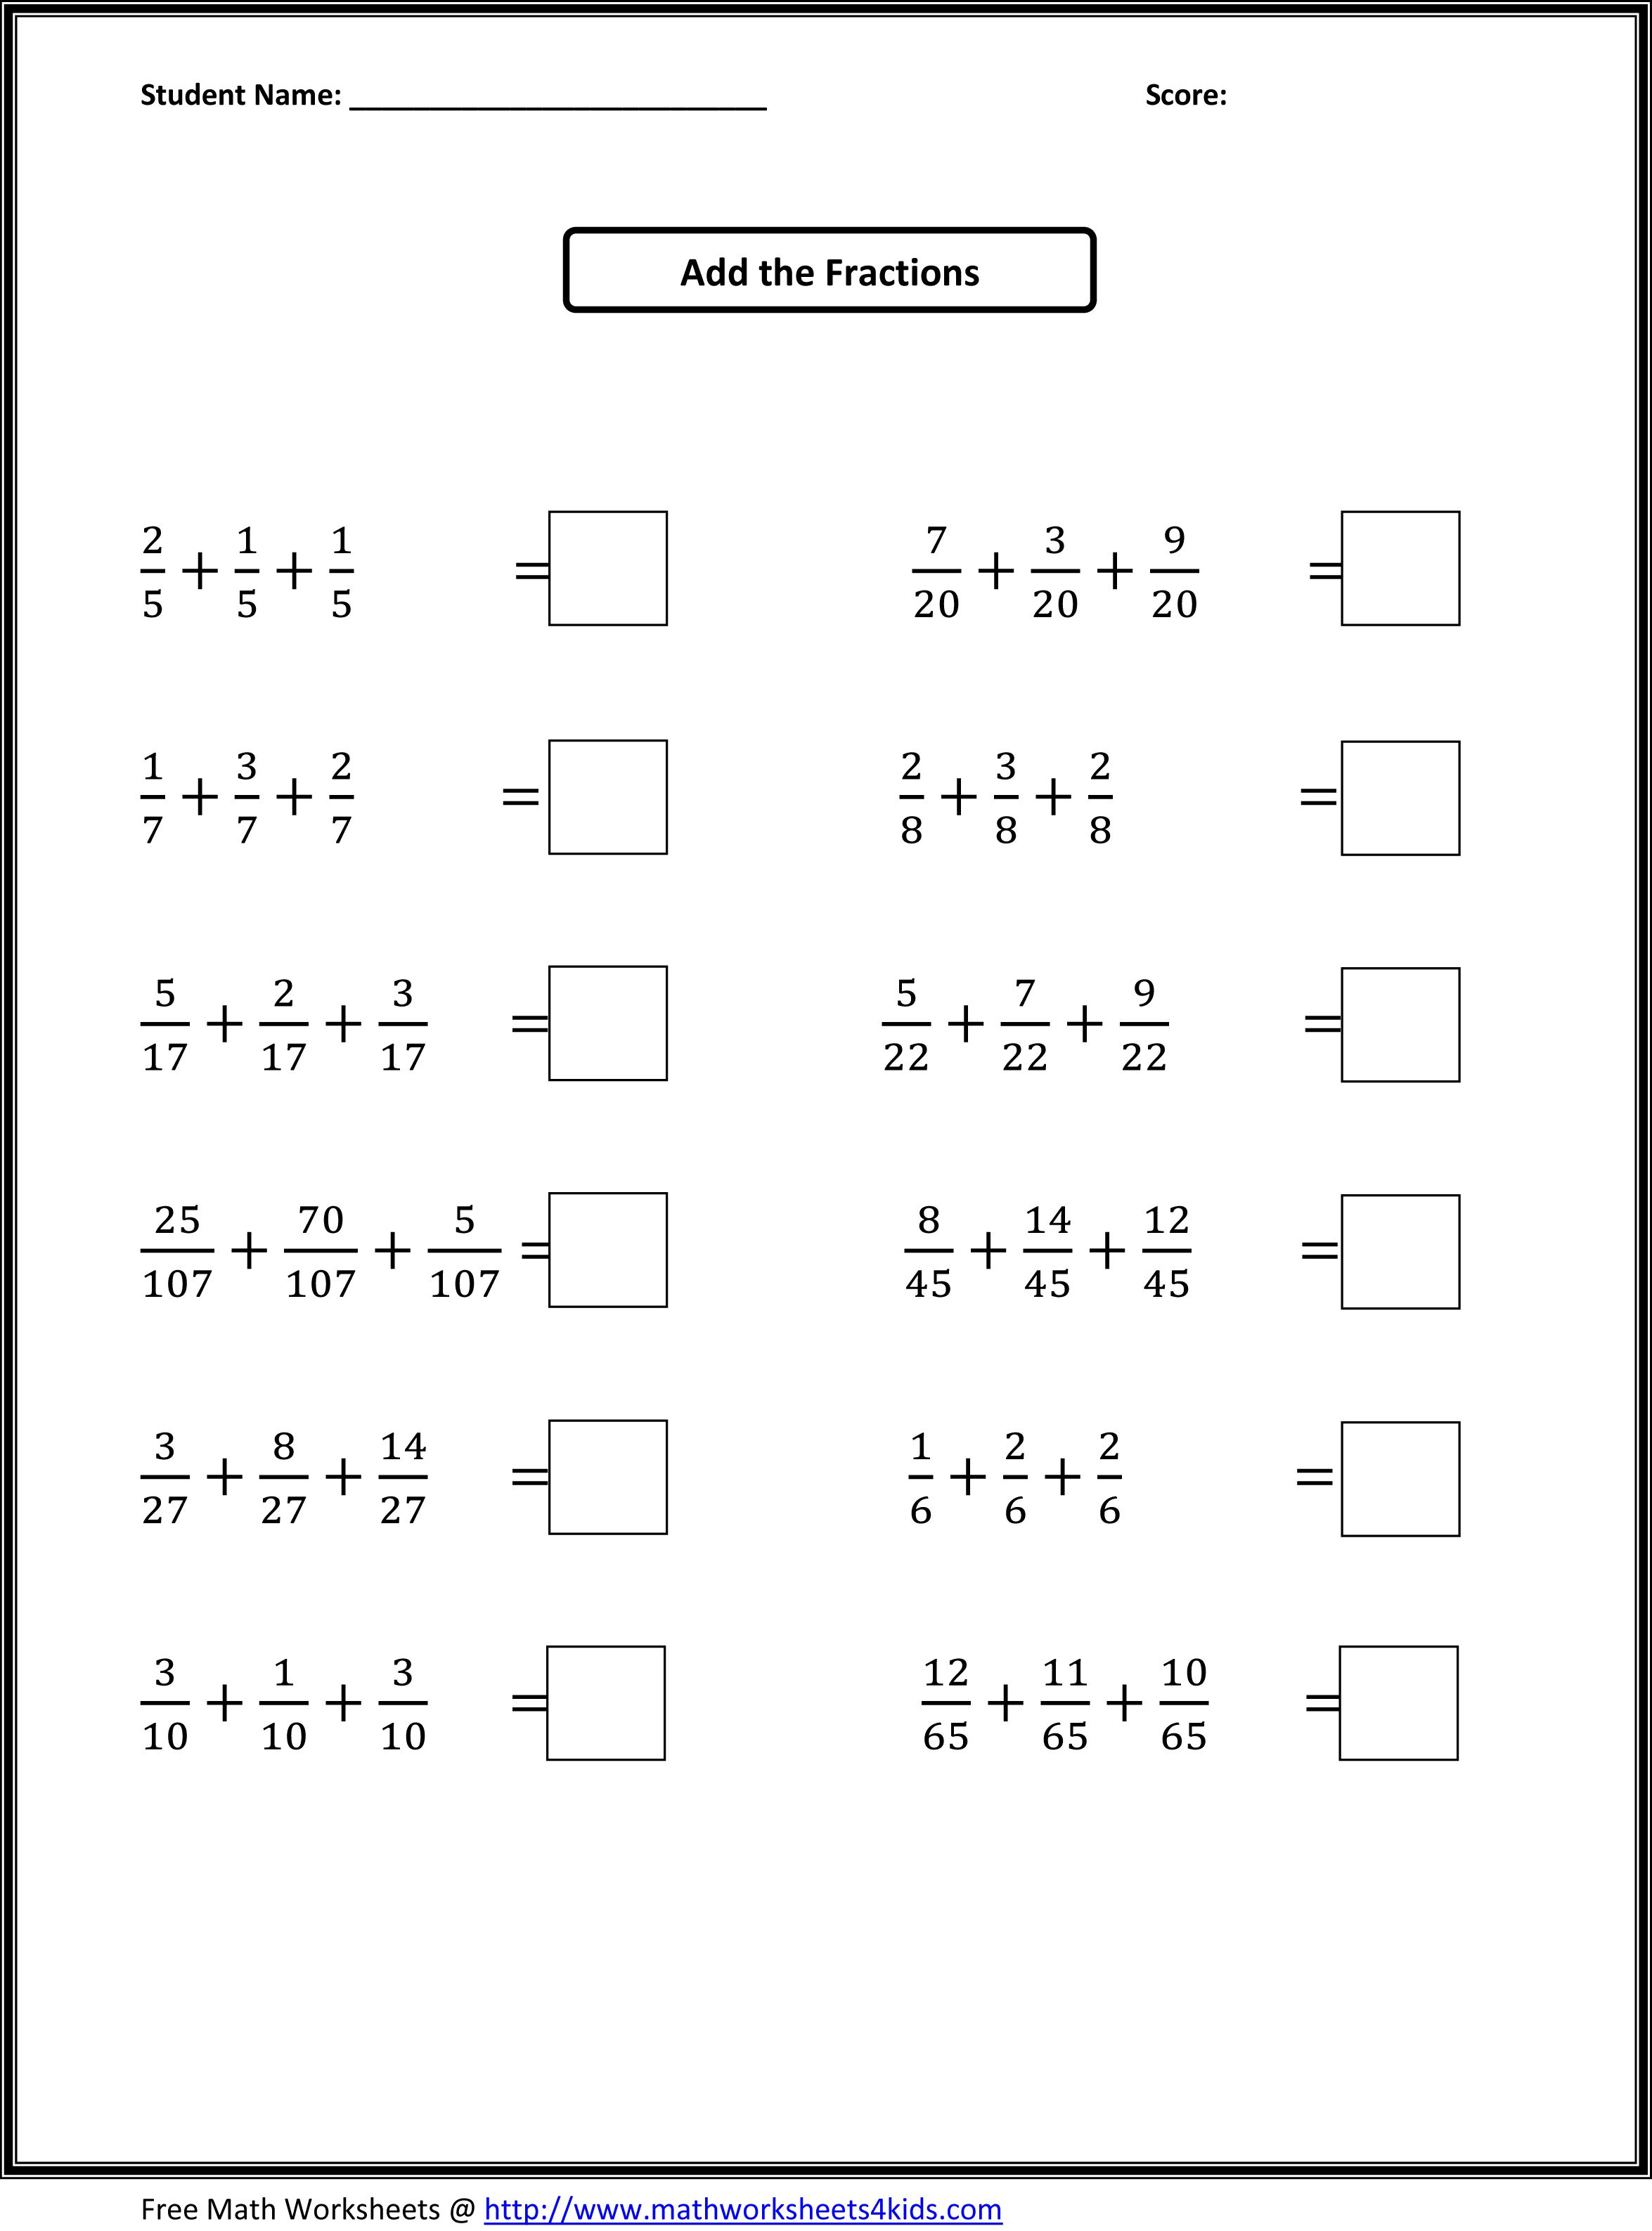 Printable Worksheetsgrade Level Andskill. | Teaching Ideas | Printable Maths Worksheets Ks2